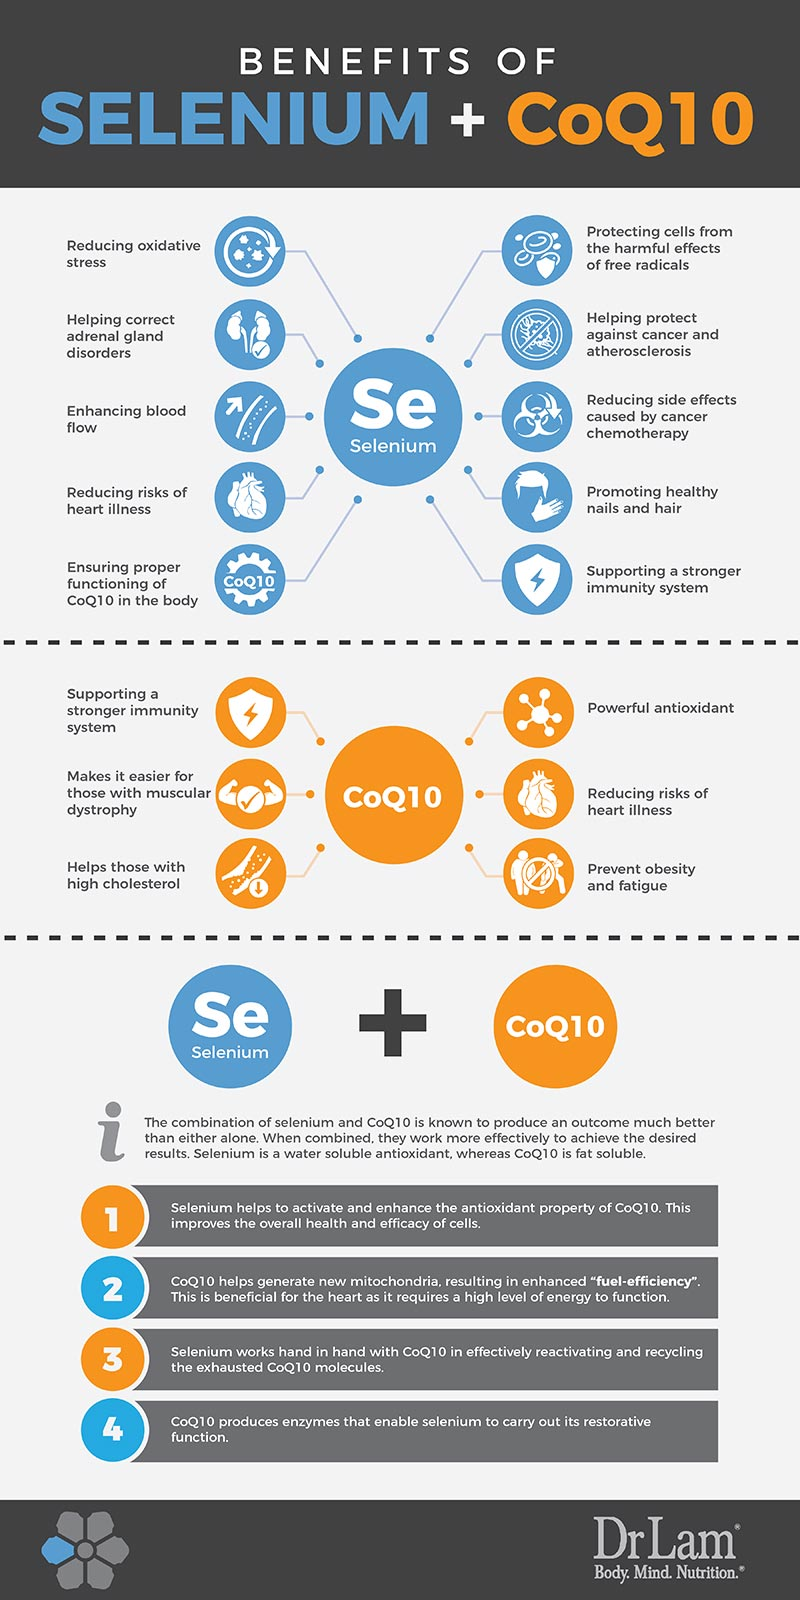 Check out this easy to understand infographic about the benefits of Selenium and CoQ10